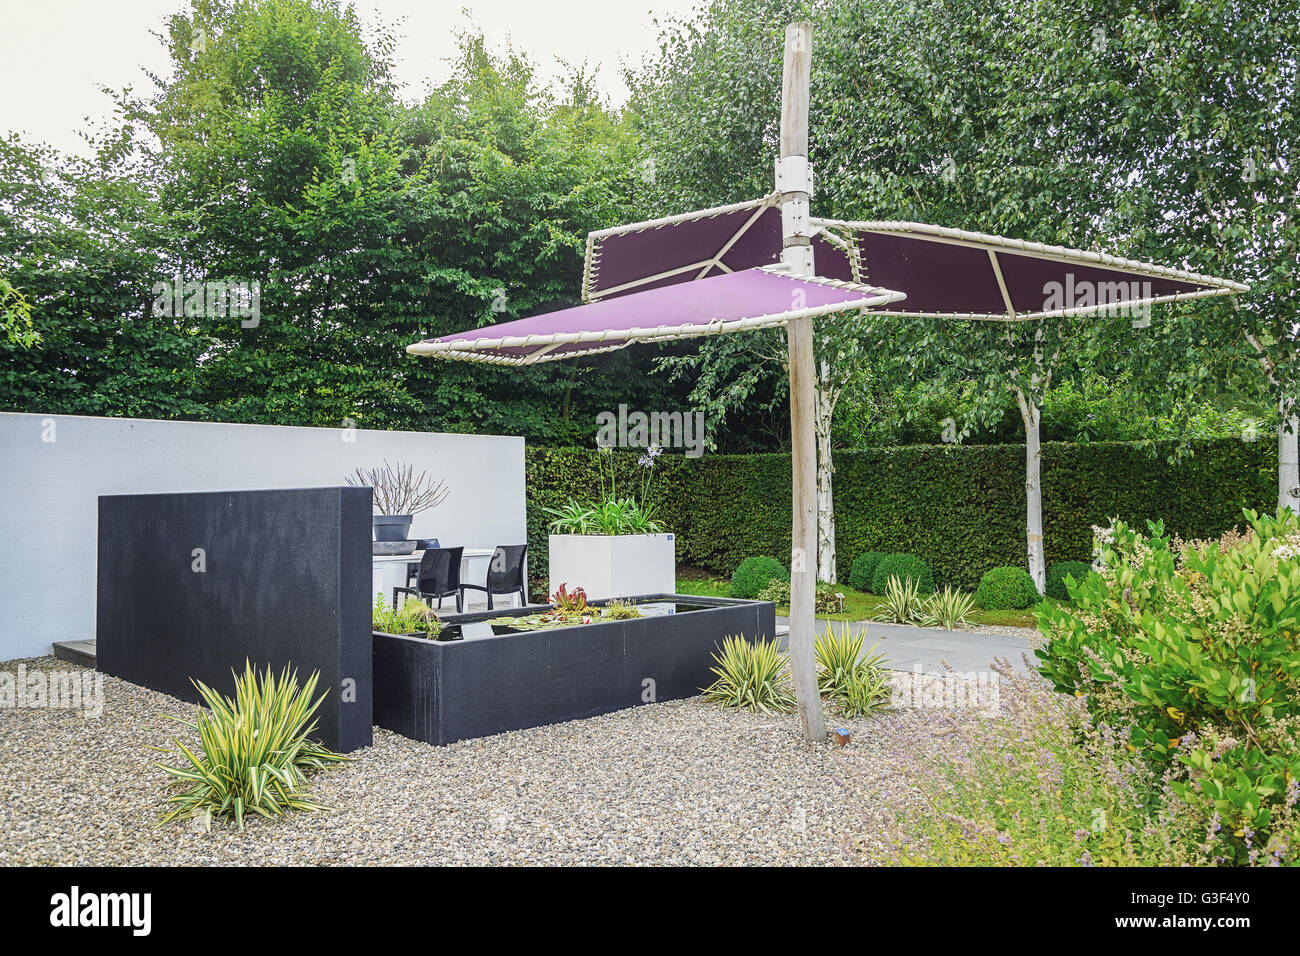 modern garden furniture stock photos  modern garden furniture  - garden with modern garden furniture trendy pond and parasol  stock image